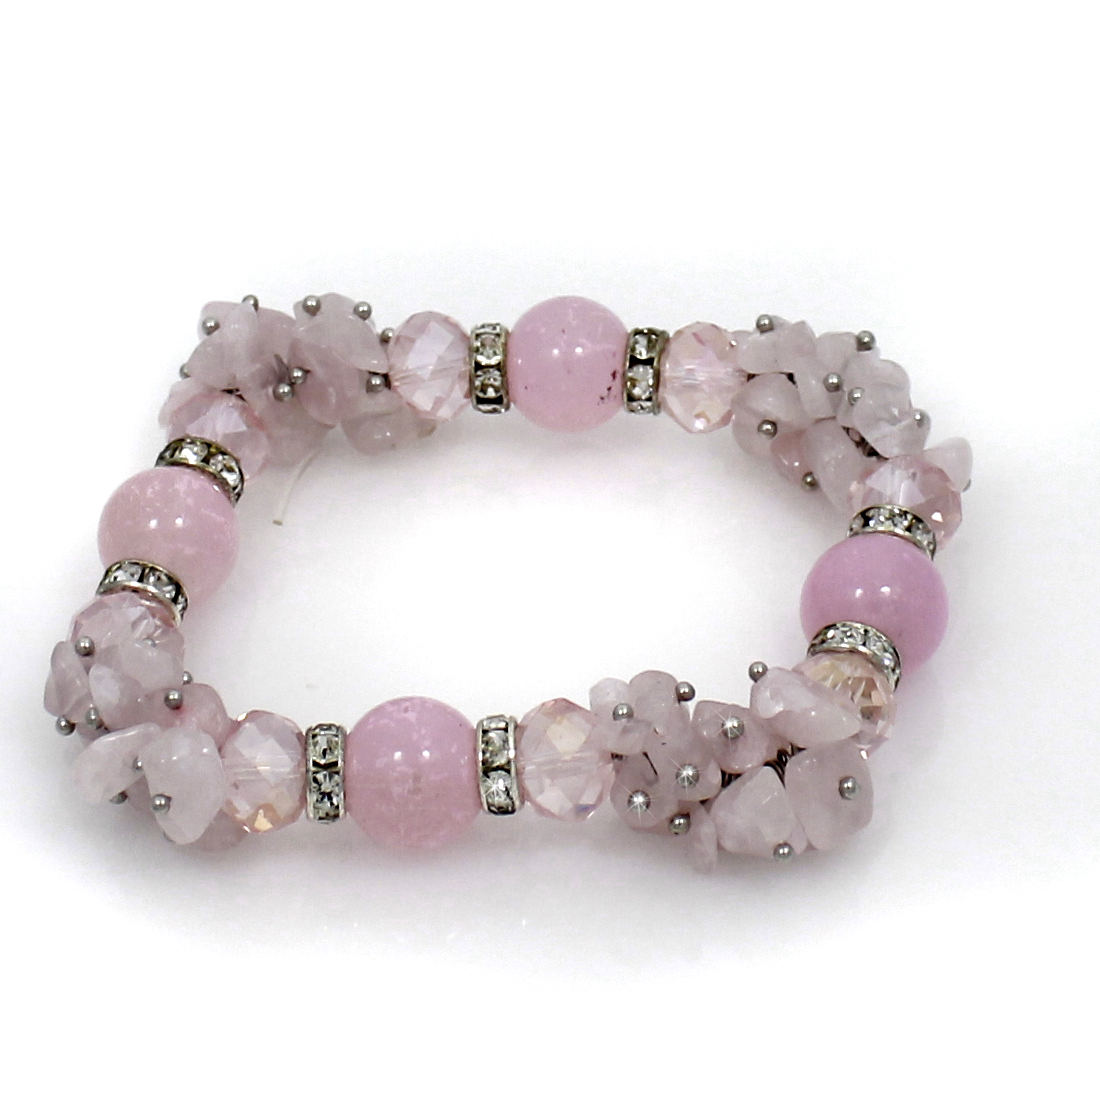 BRS01-PINK - BRS01-PINK FASHION JEWELRY BRACELETS